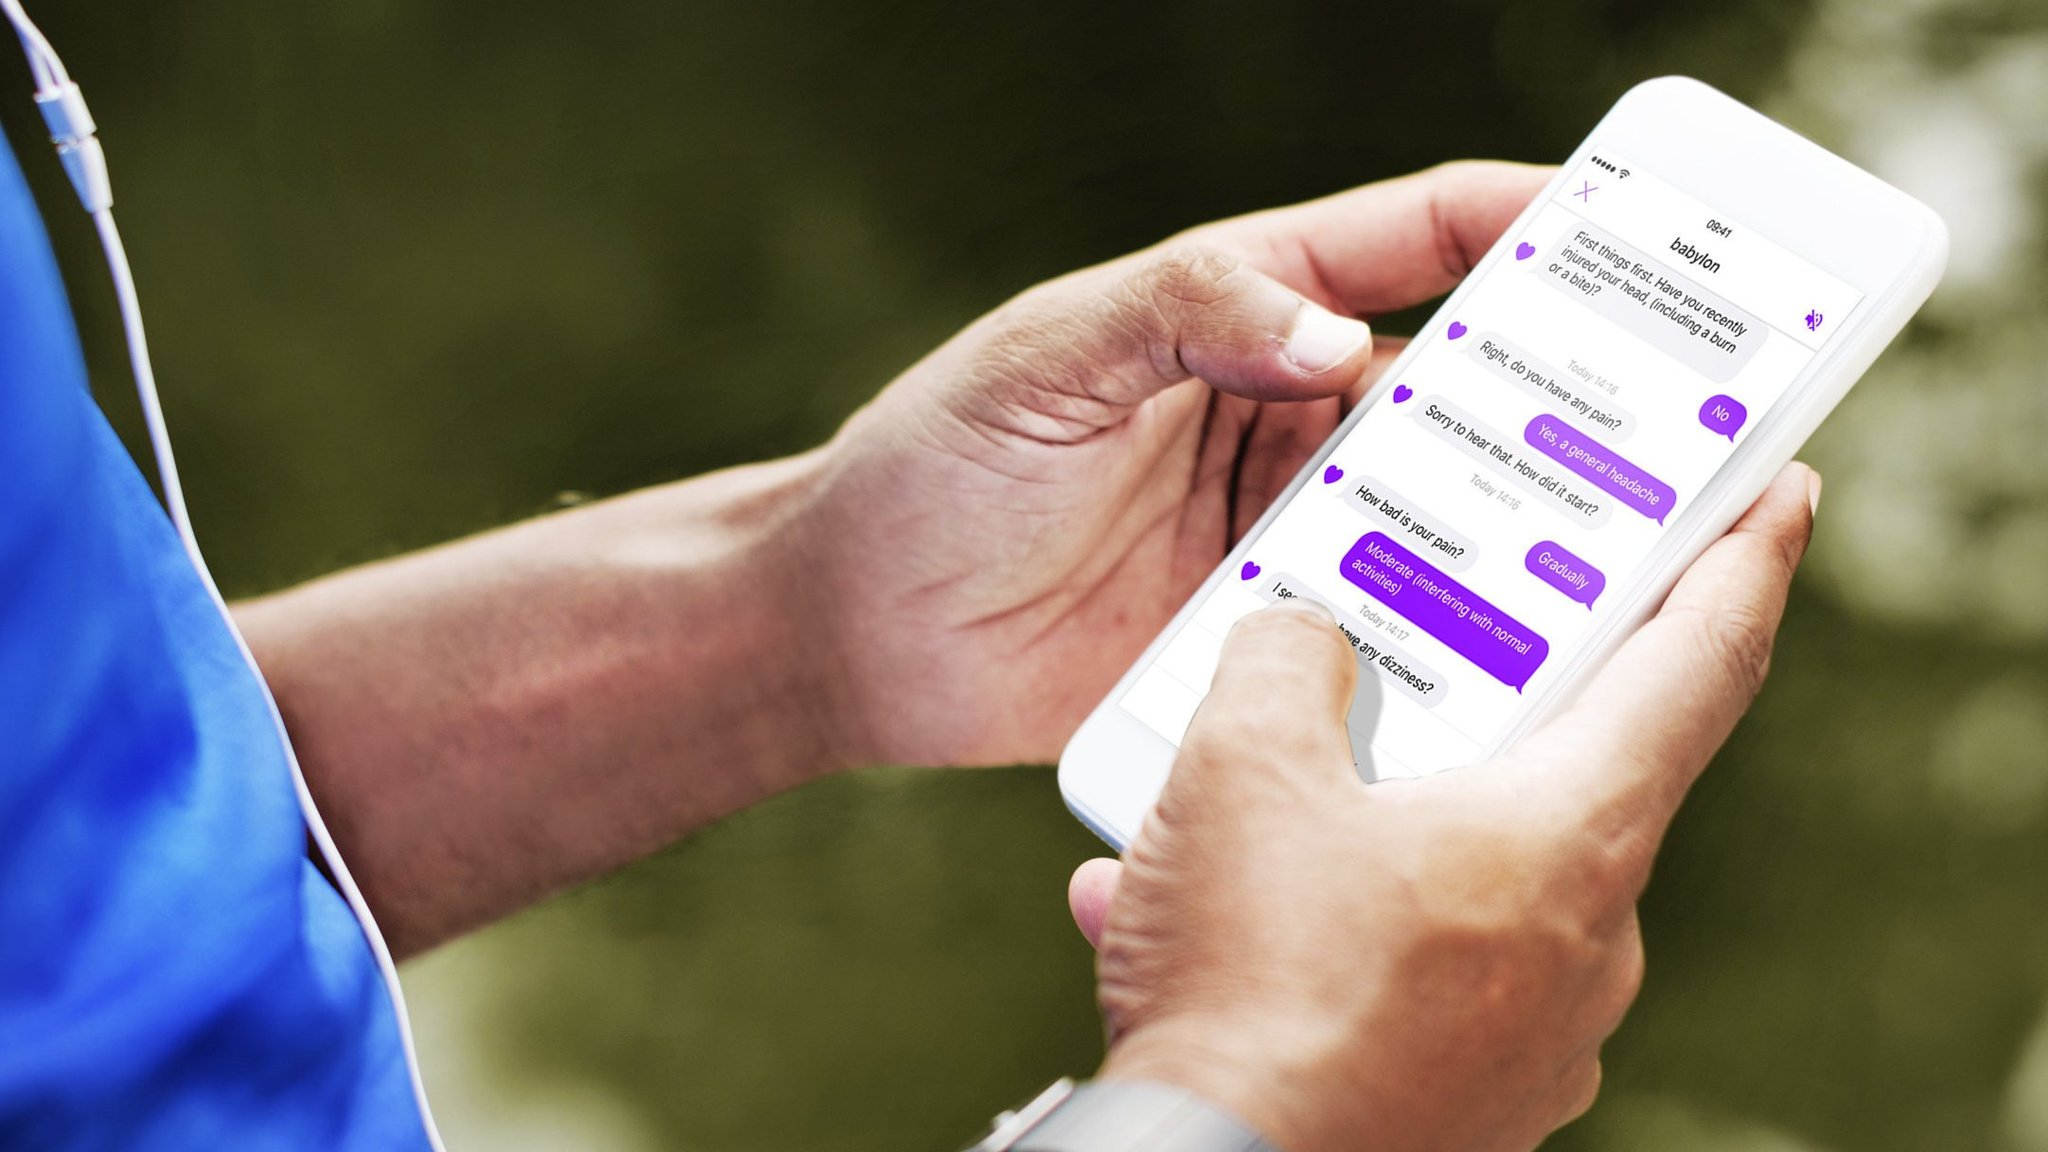 High-profile health app under scrutiny after doctors